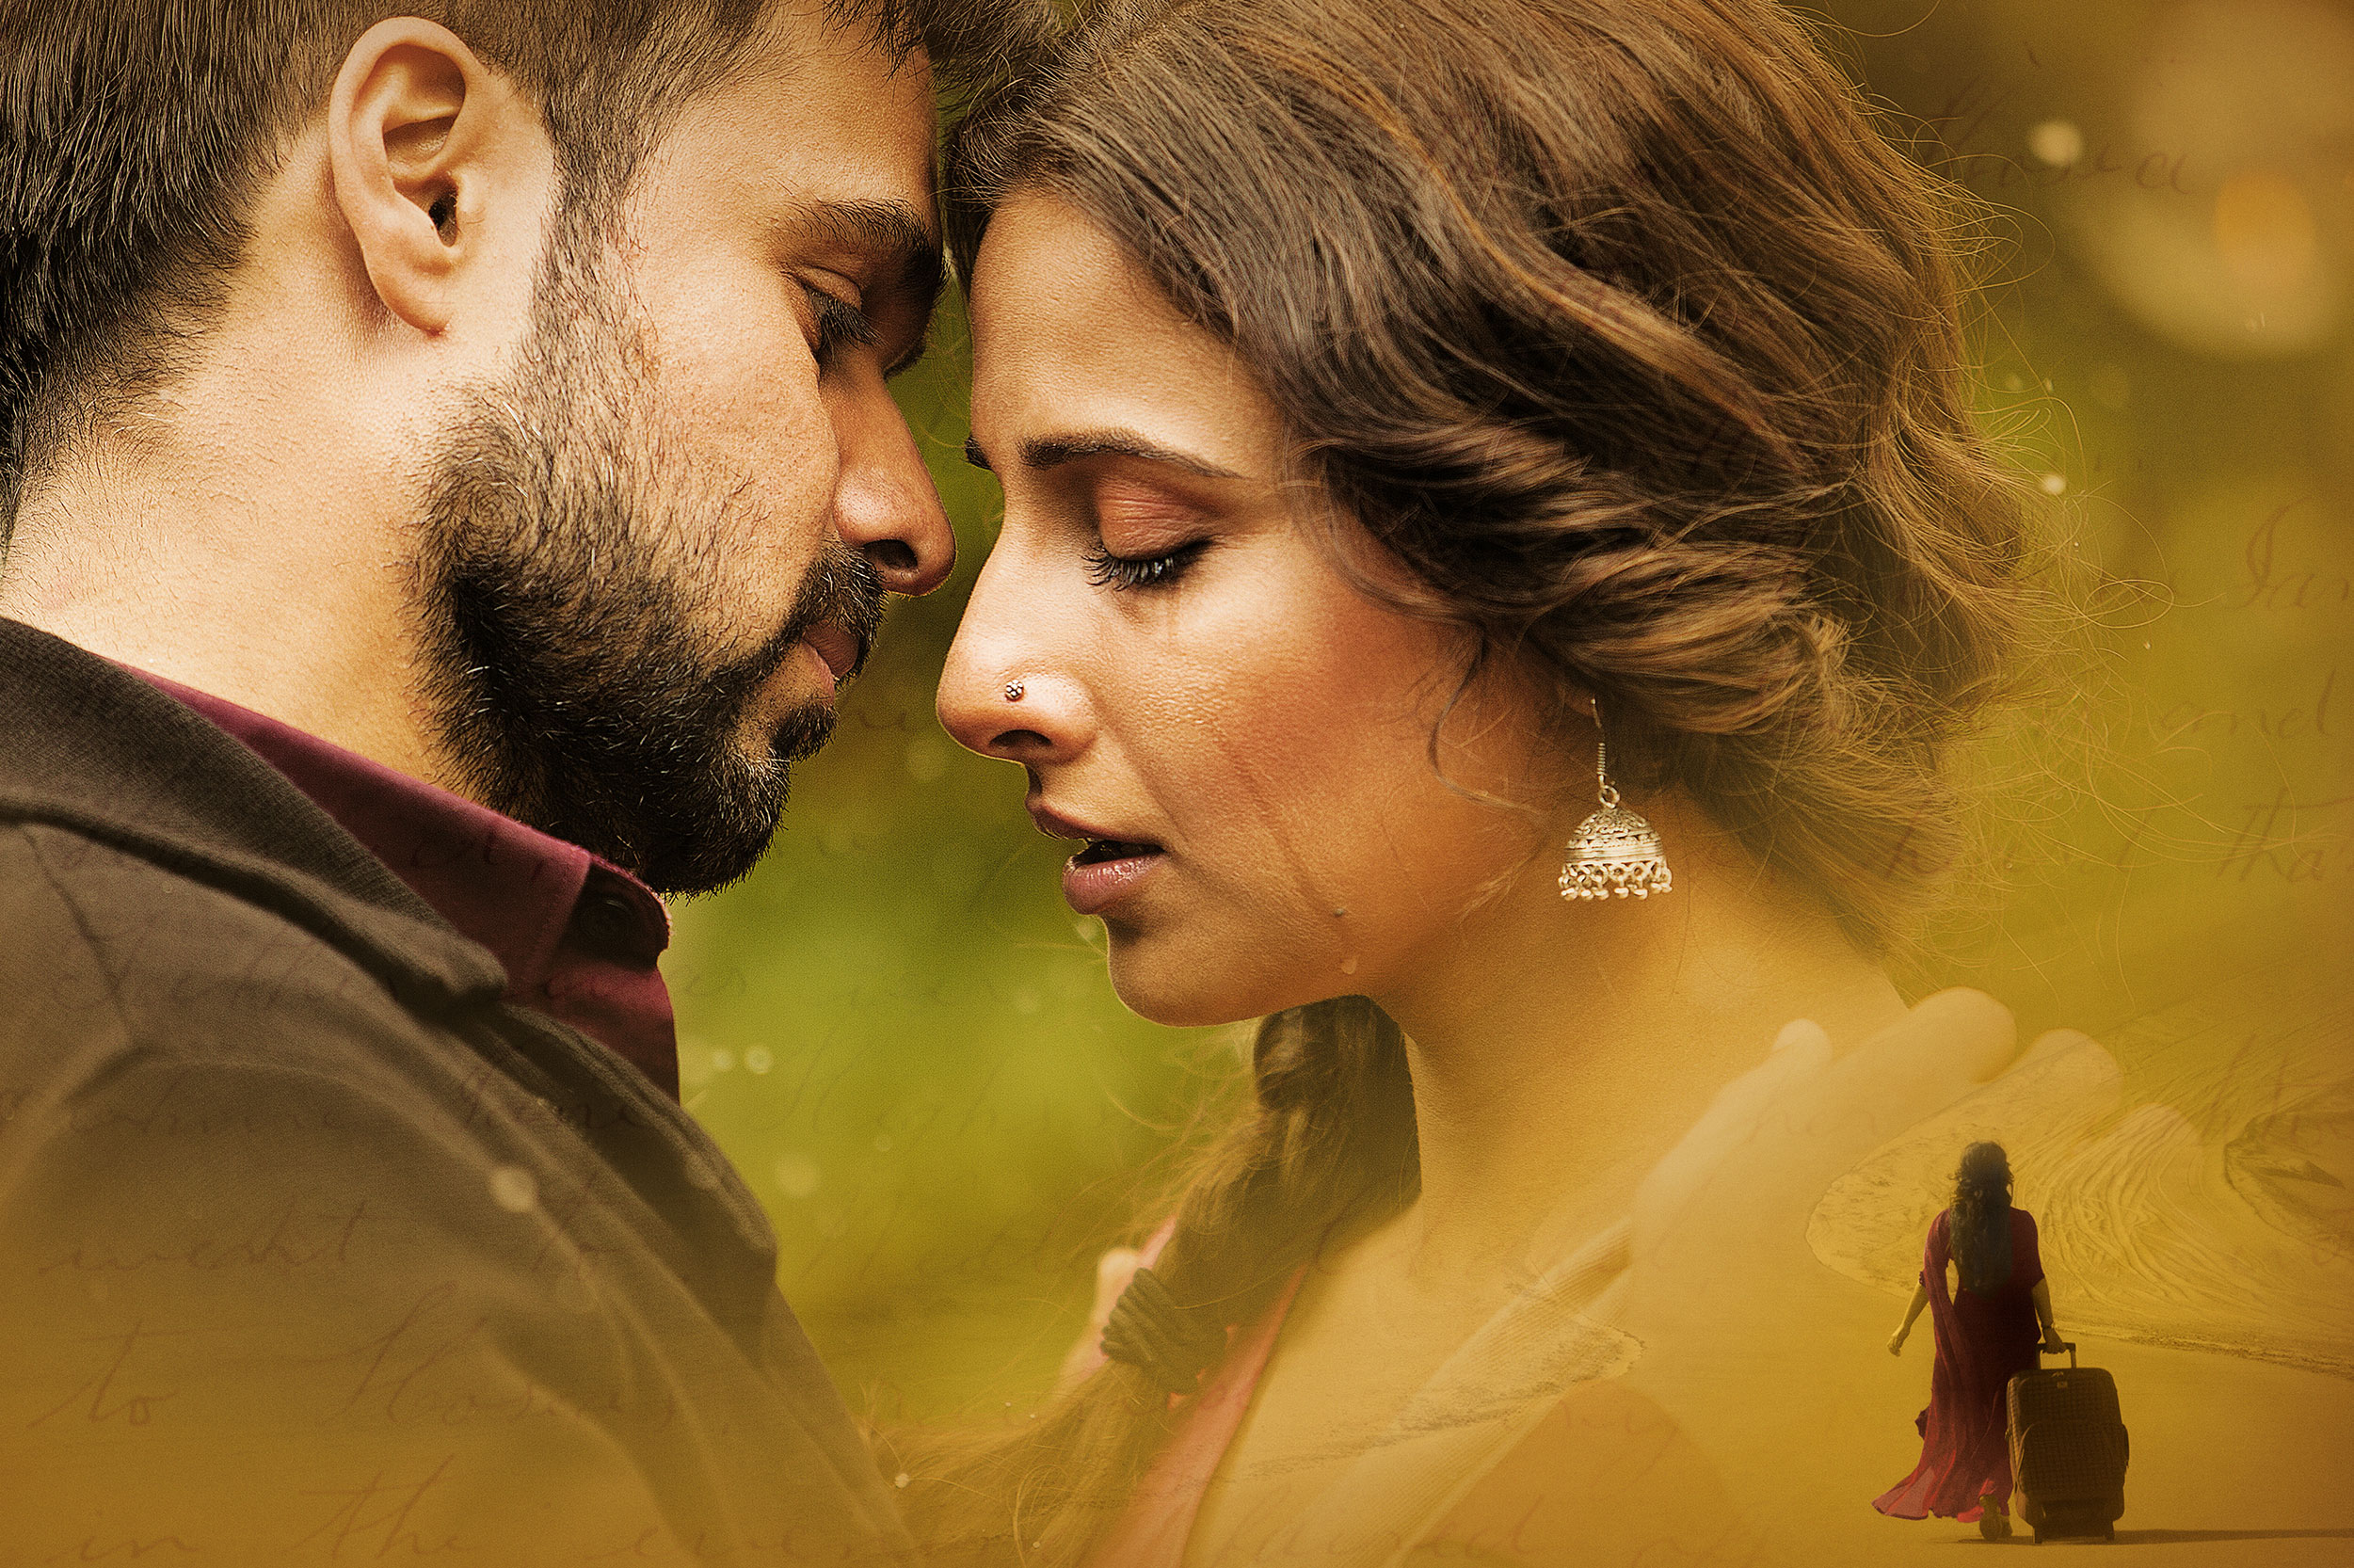 Hamari Adhuri Kahani International Indian Movies distribution R16